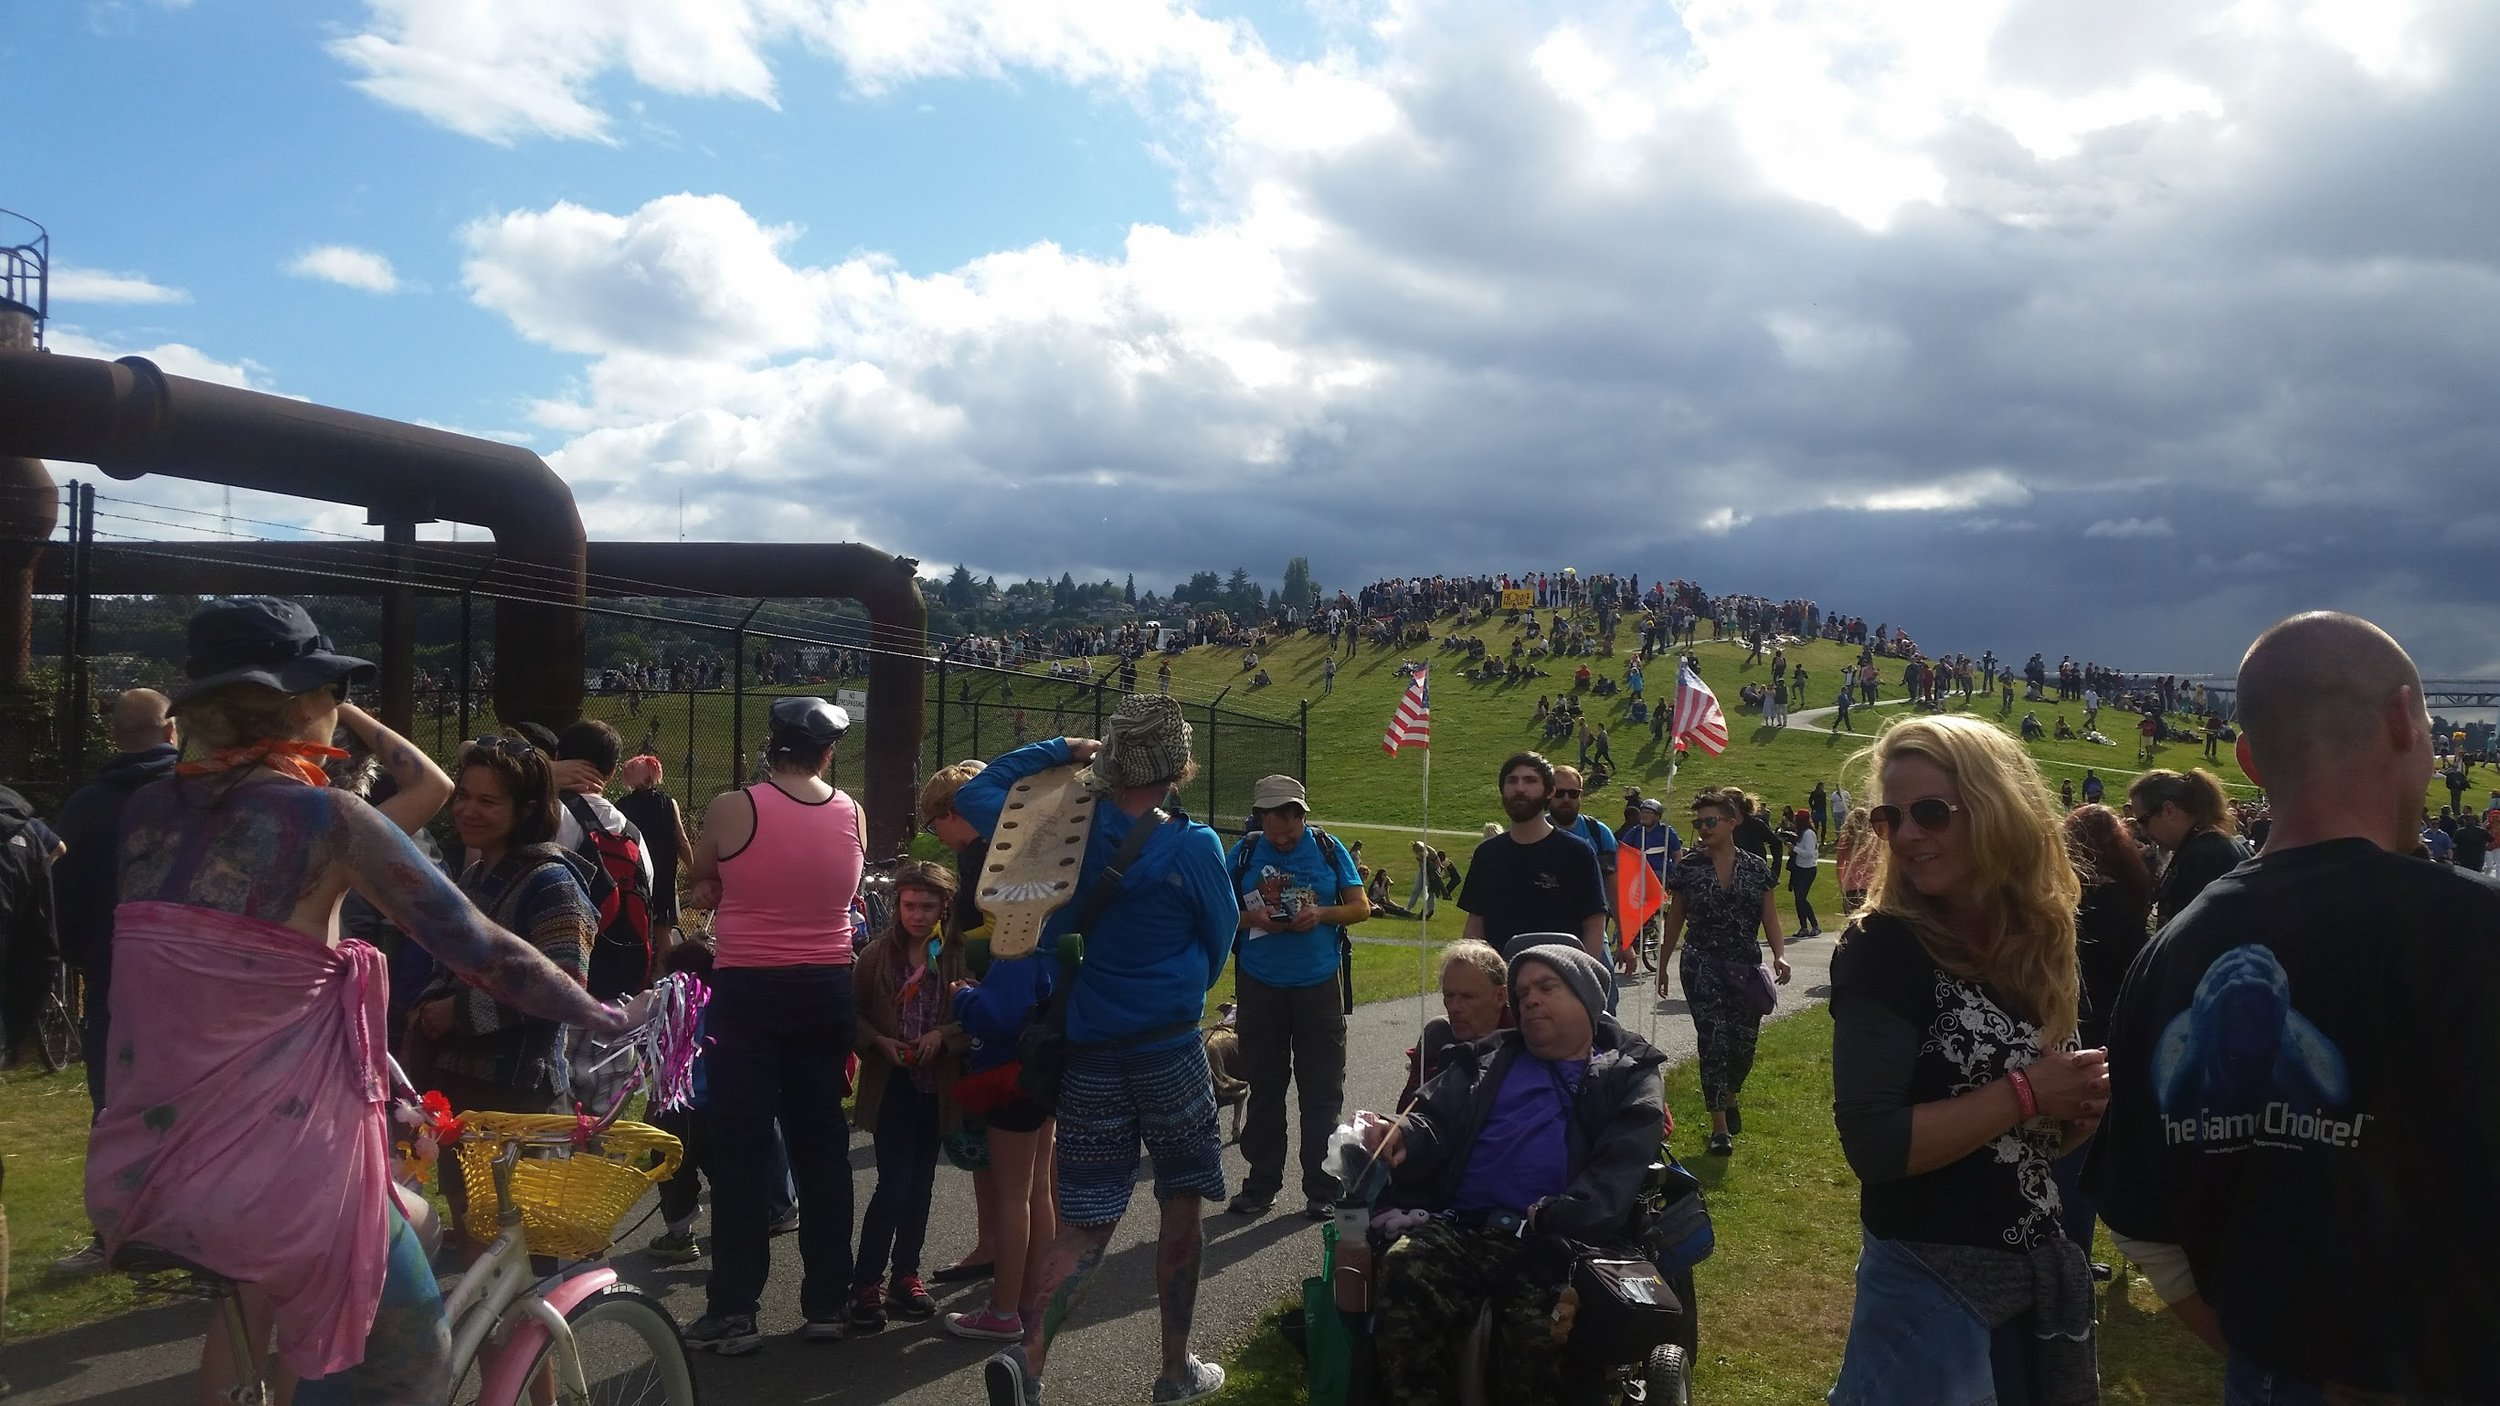 Not Earth Day at Seattle's Gas Works Park, but how I imagine it would look during an Earth Day celebration.